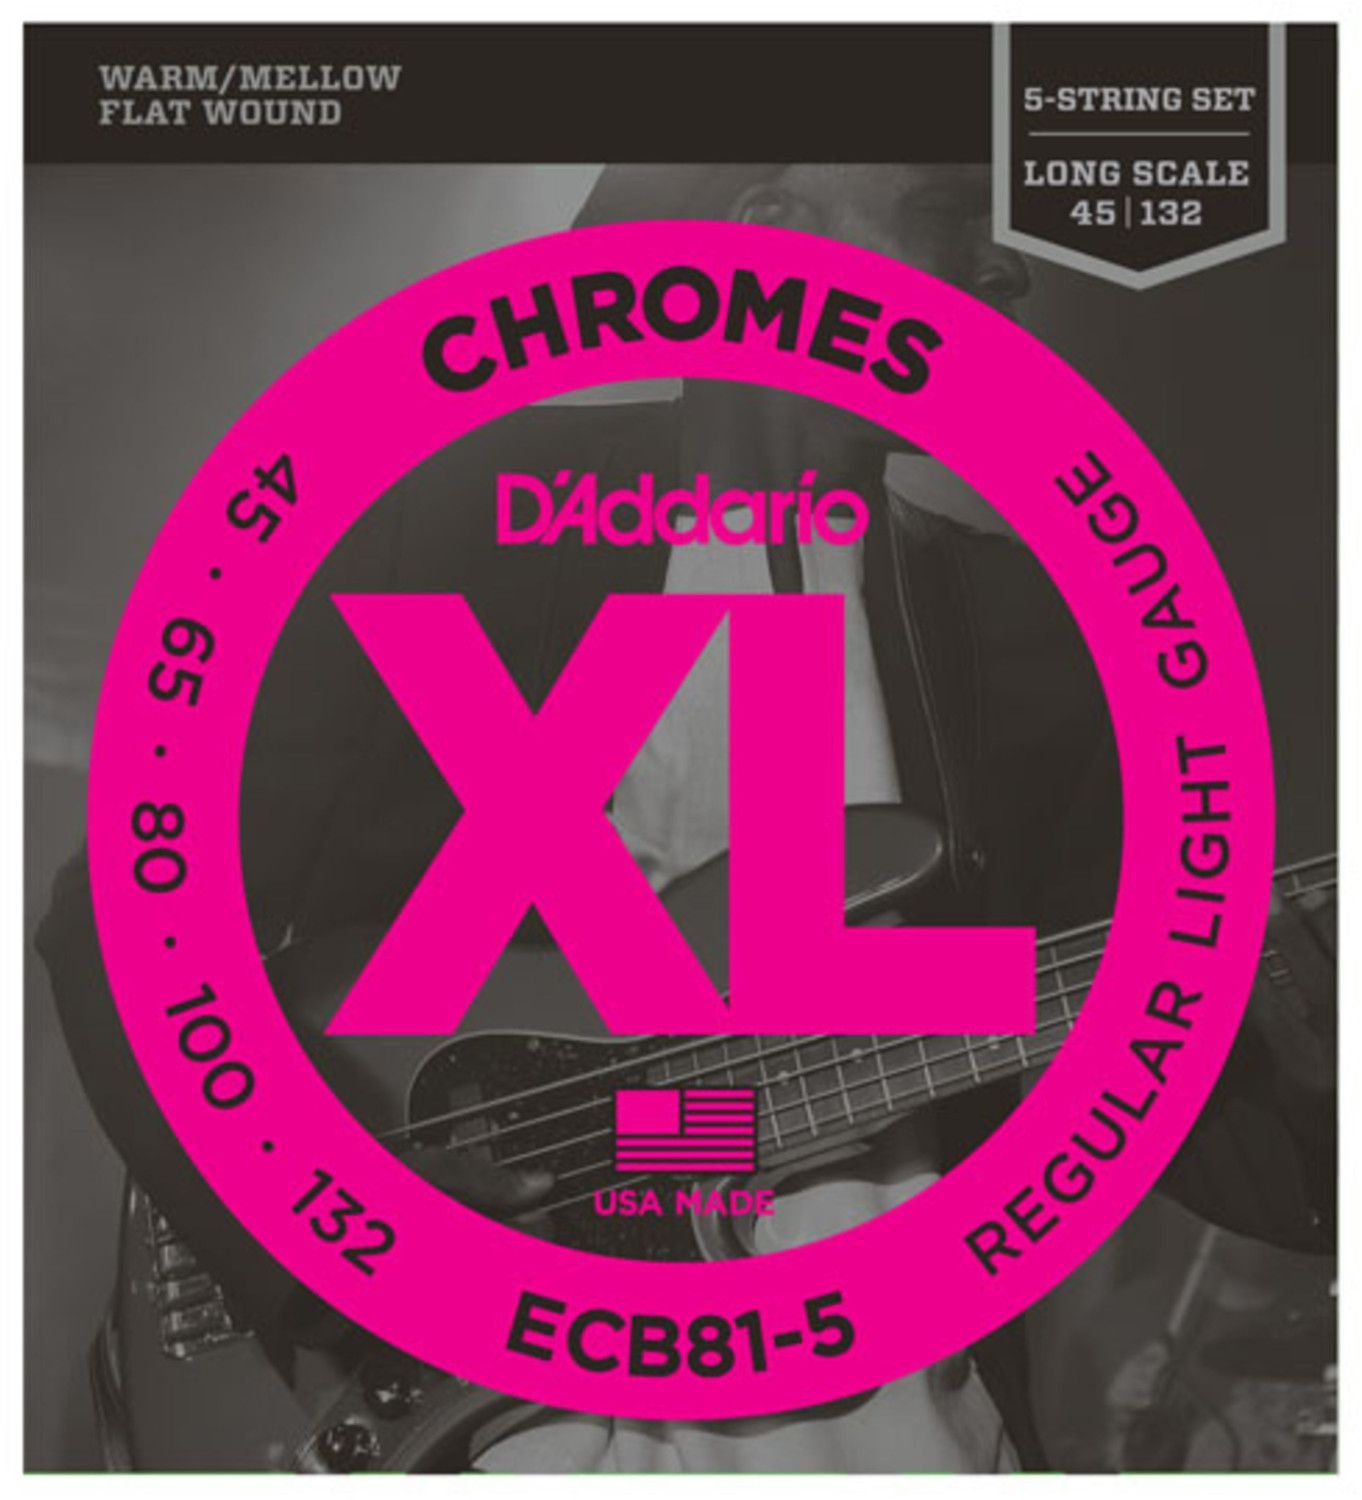 Image of D'Addario ECB81-5SL Set Super Long Scale 5-String 45-132